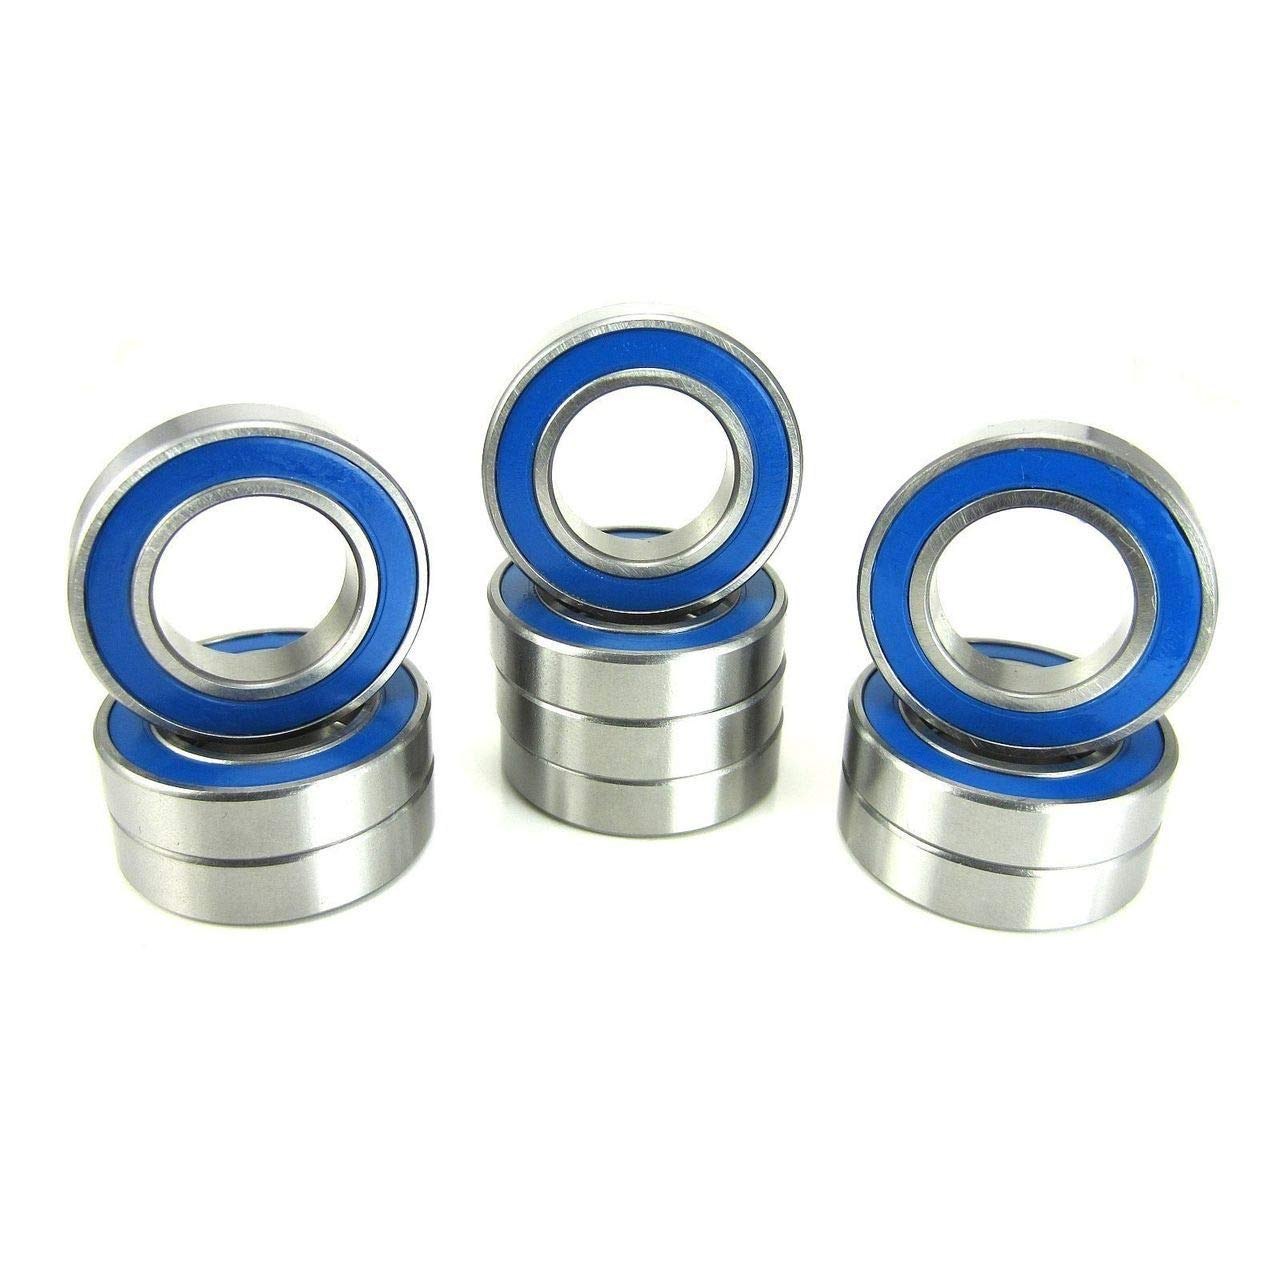 17x30x7mm Precision Ball Bearings ABEC 3 Blue Rubber Seals (10)